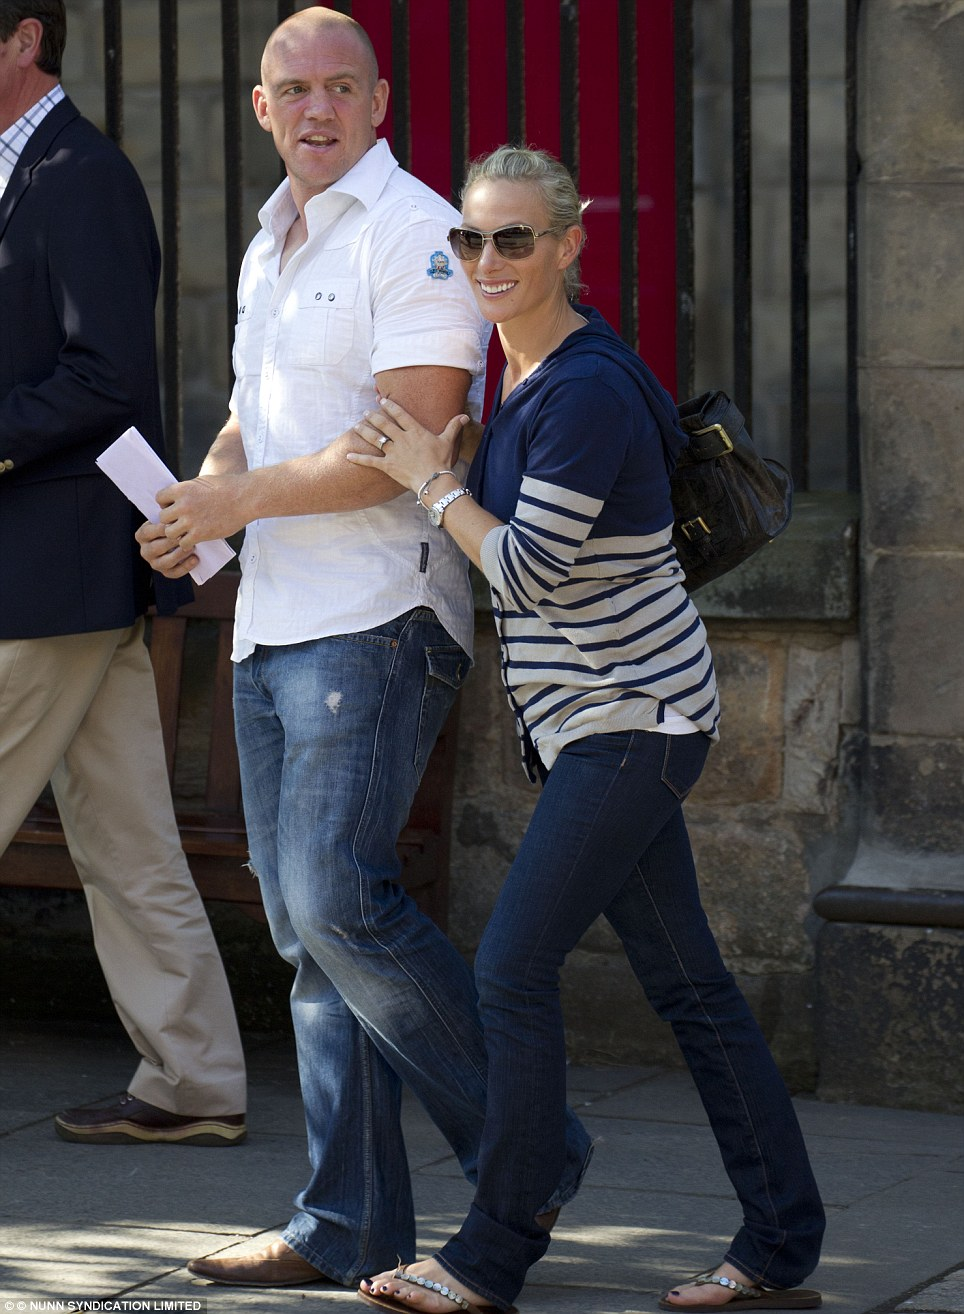 Zara Phillips Wedding To Mike Tindall Kate Middleton Joins Royal Yacht Britannia Party Daily